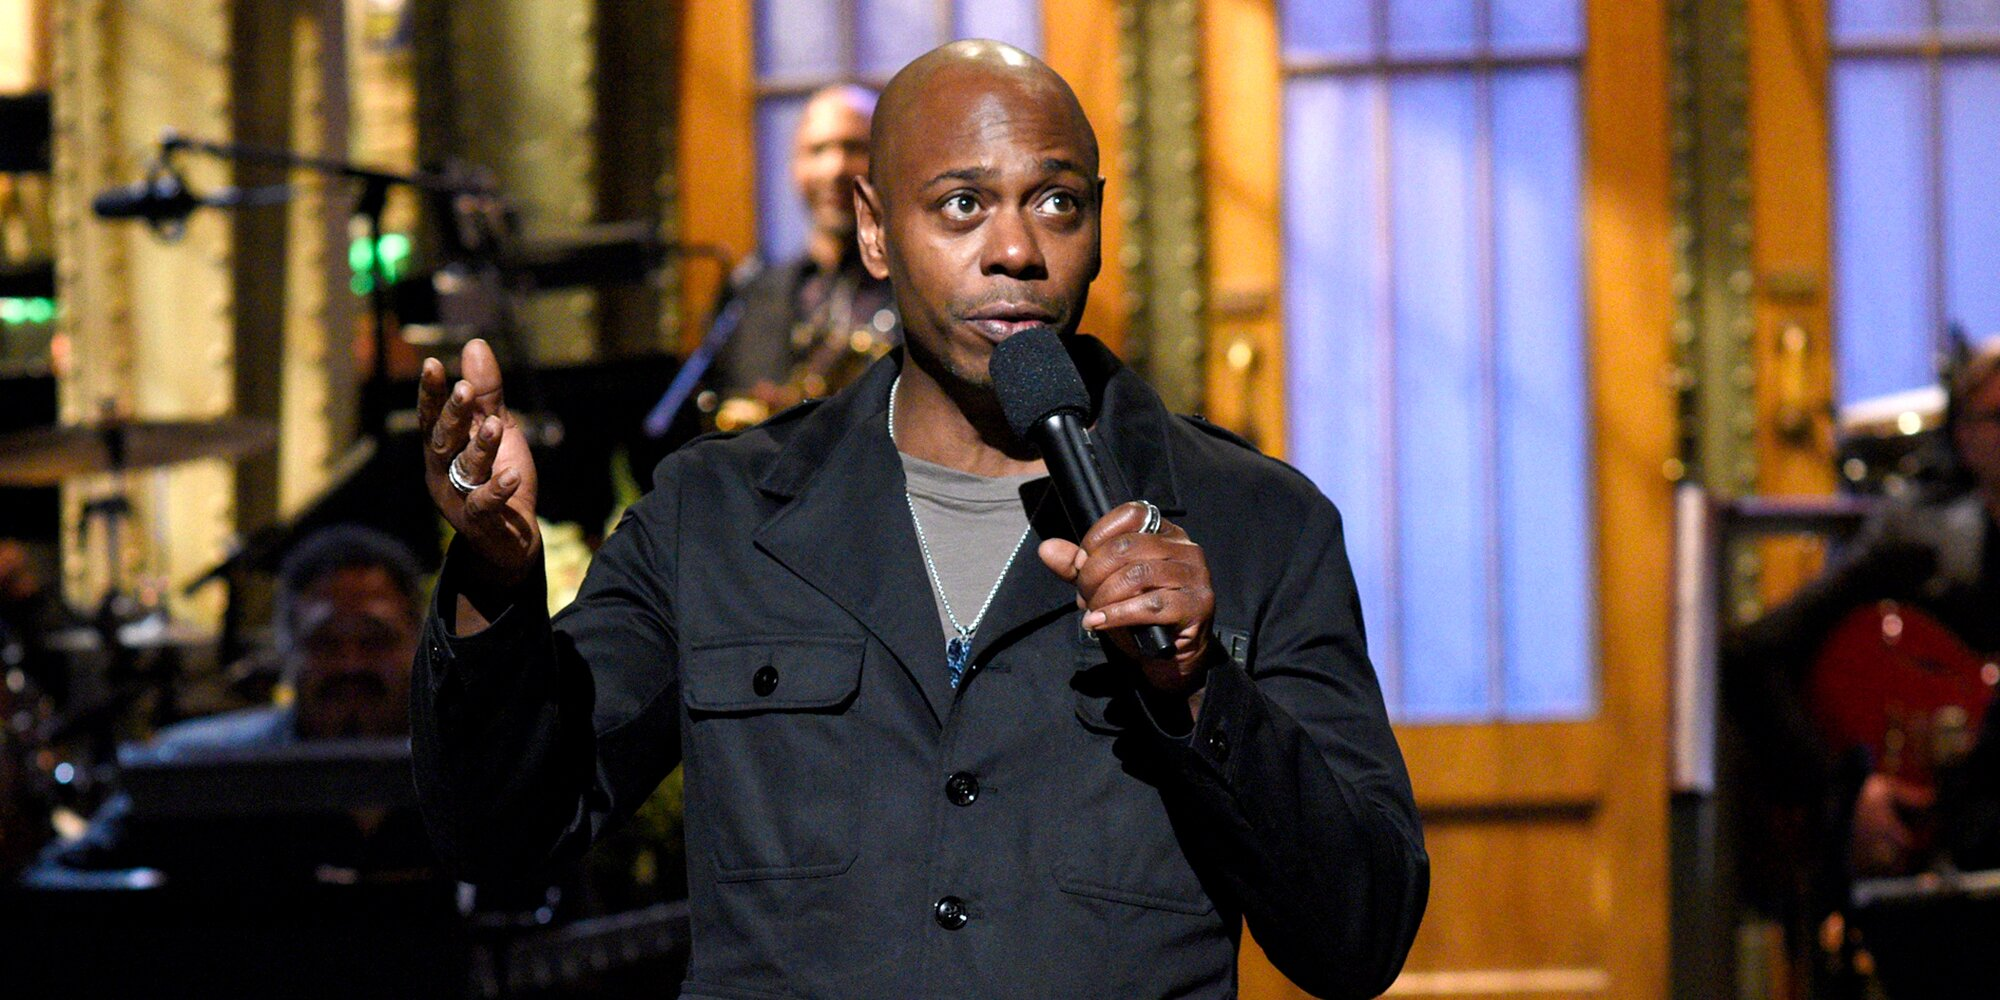 Dave Chappelle reveals celebrities stashed 'dirty notes' for Trump administration in White House